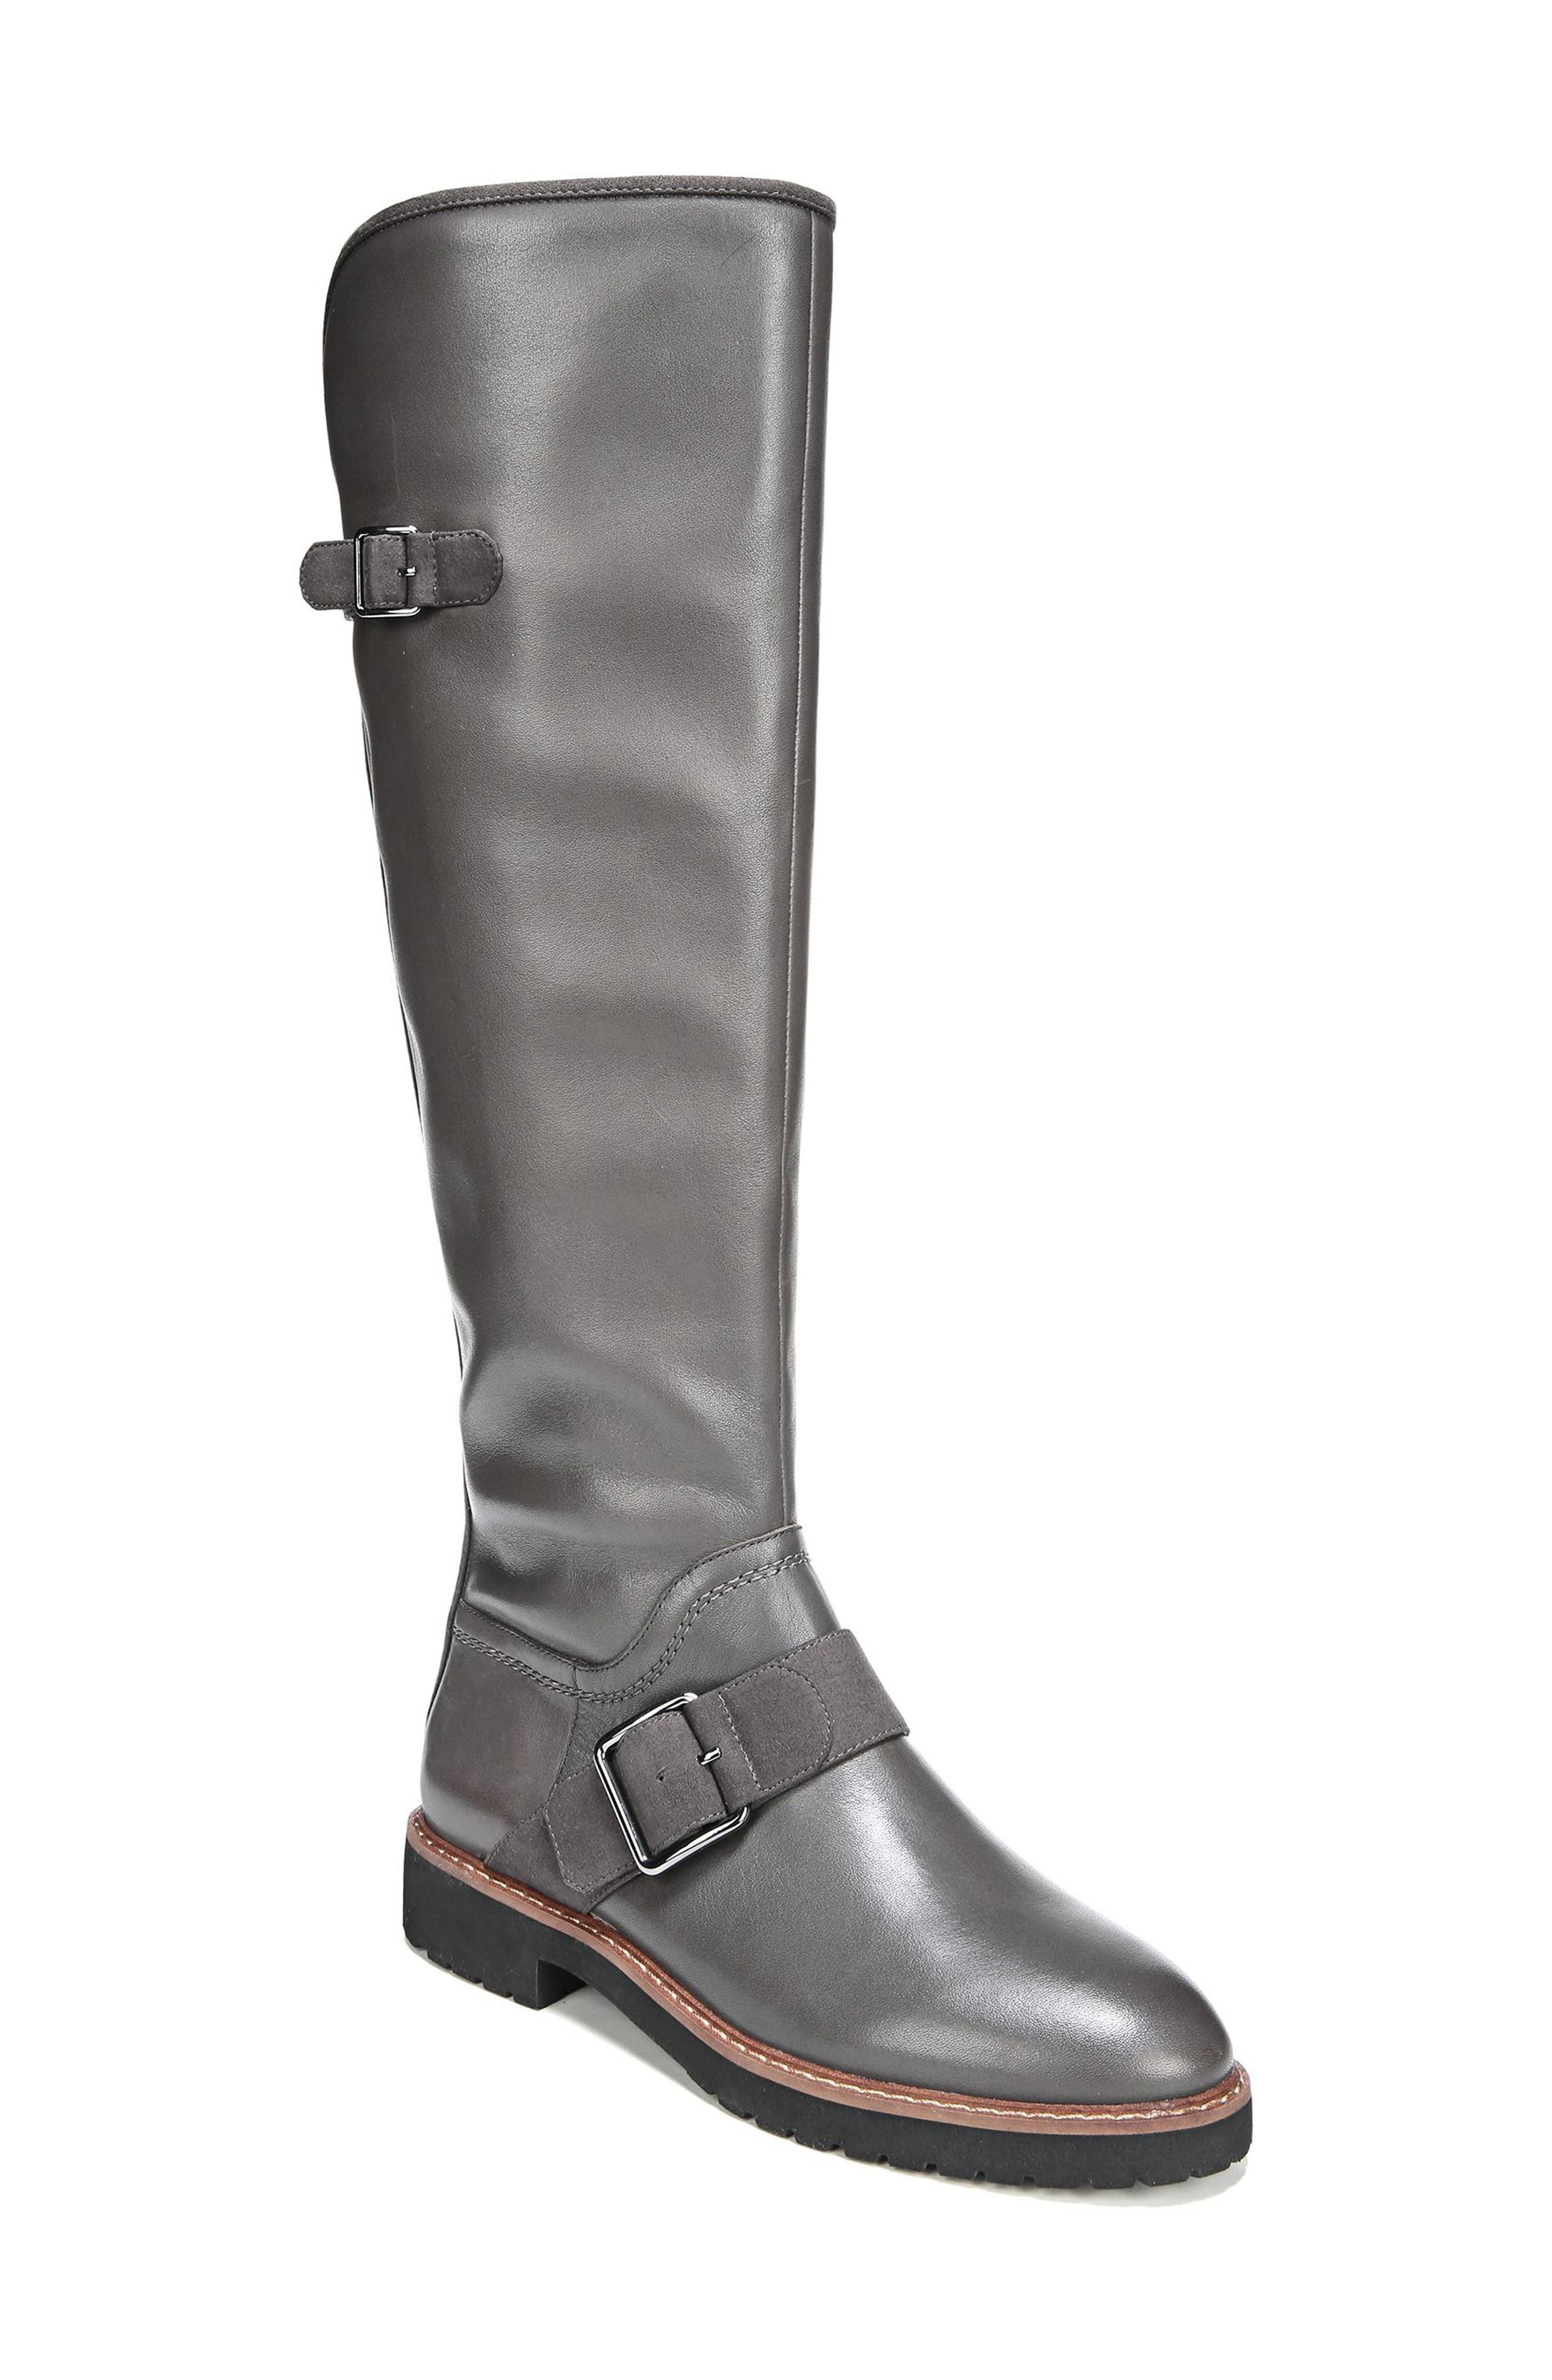 Cutler Riding Boot,                         Main,                         color, Peat Leather